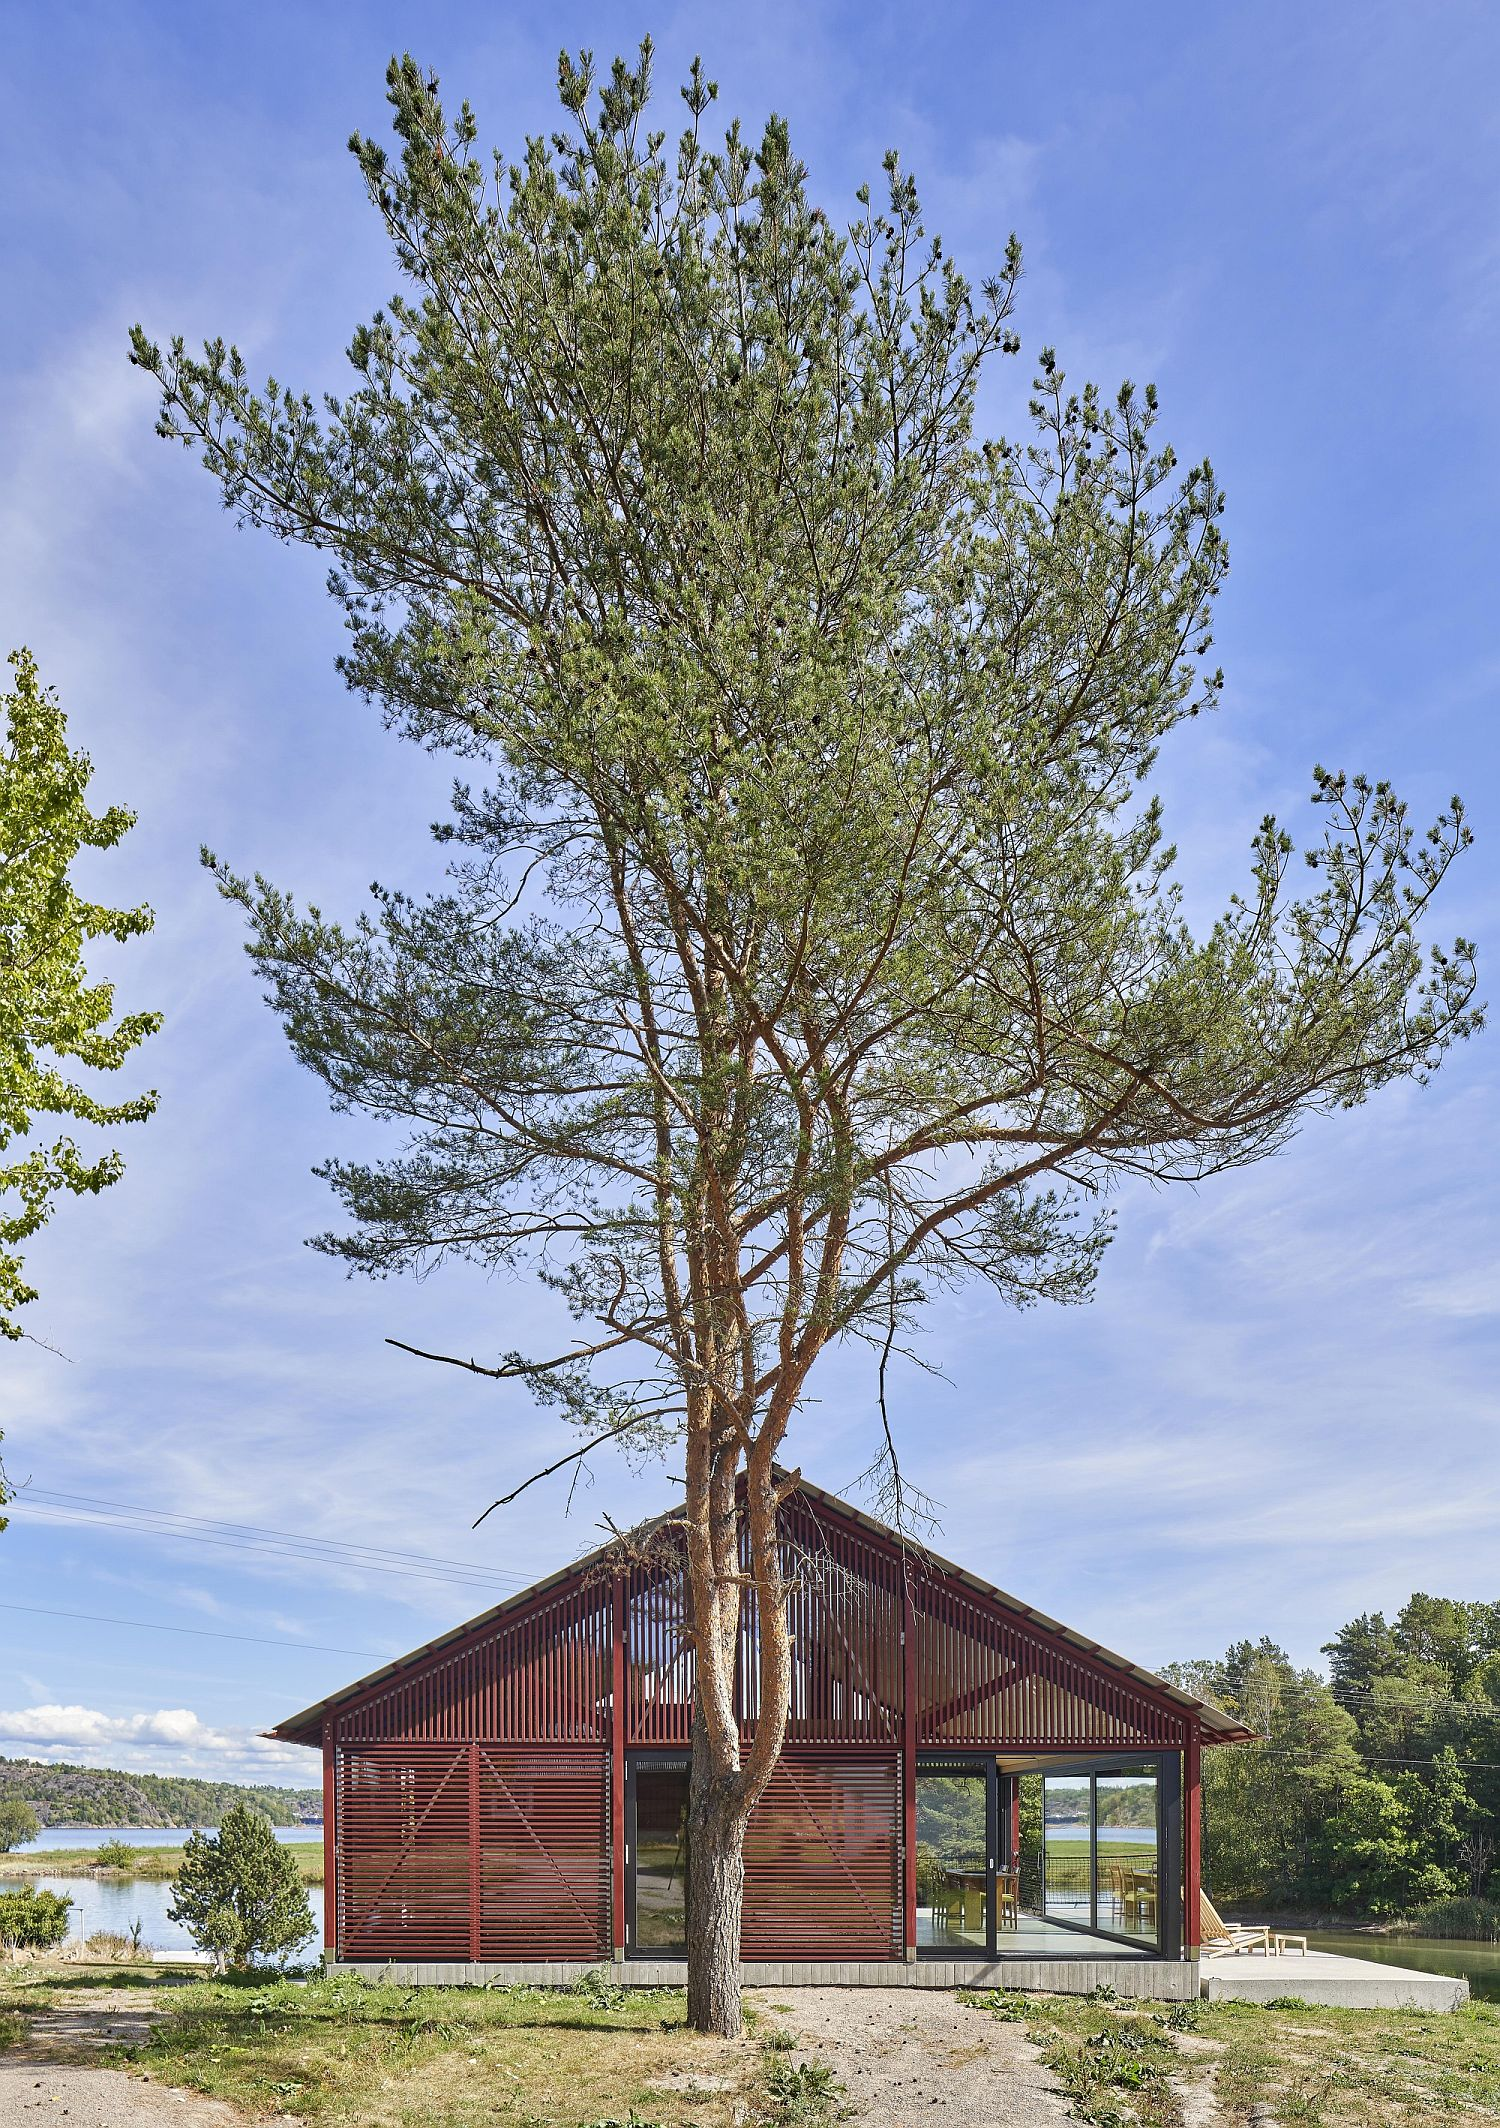 Cabin can be opened and closed to various degrees using wooden shutters